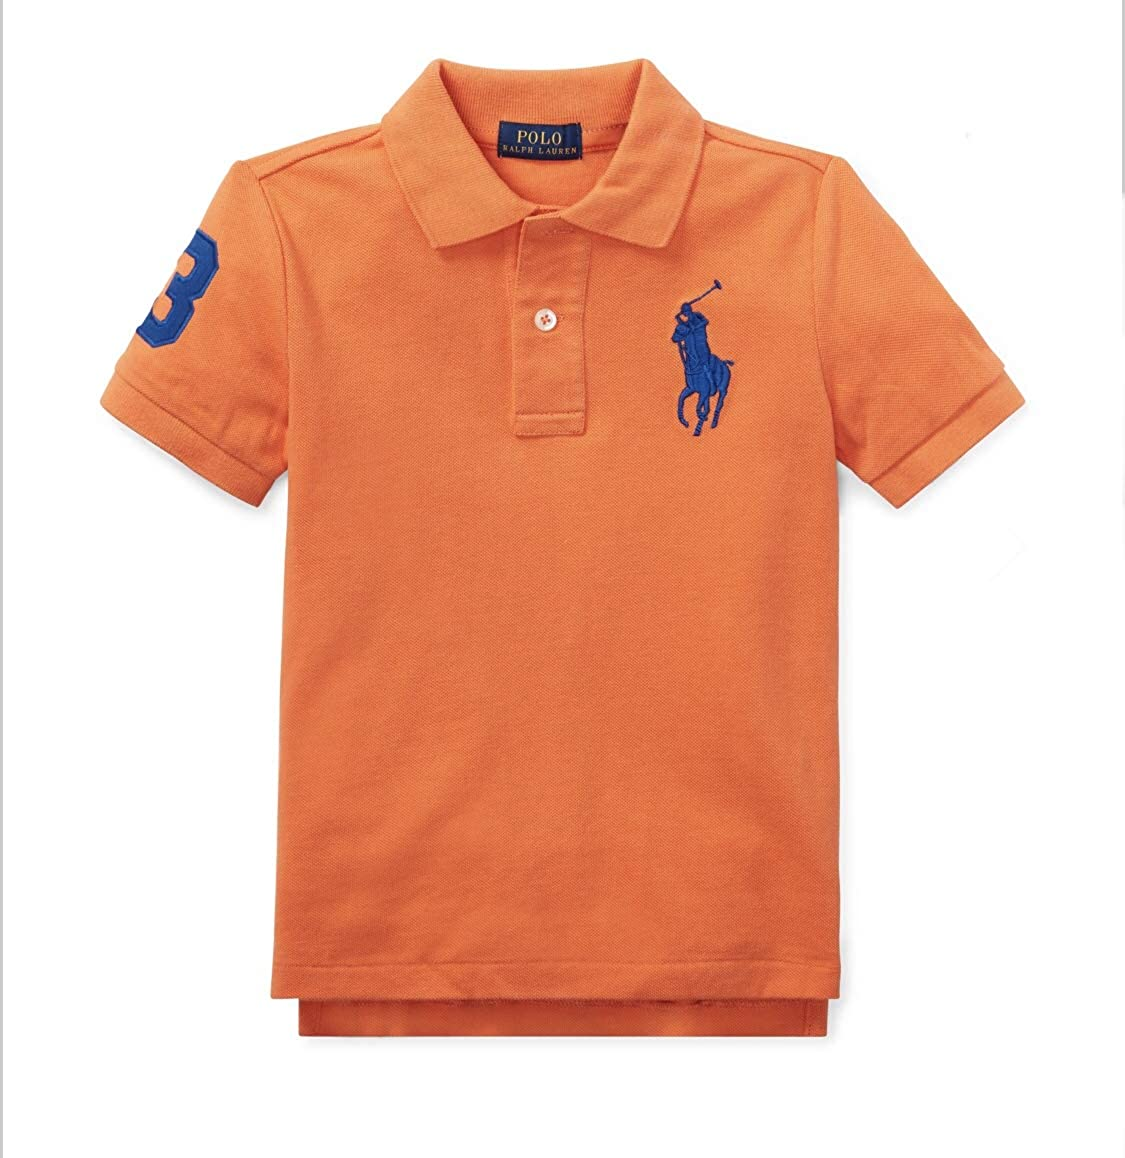 Polo Ralph Lauren Toddler//Boys Shirts Big Pony /& Number on Sleeves 100/% Cotton 2-20 Years